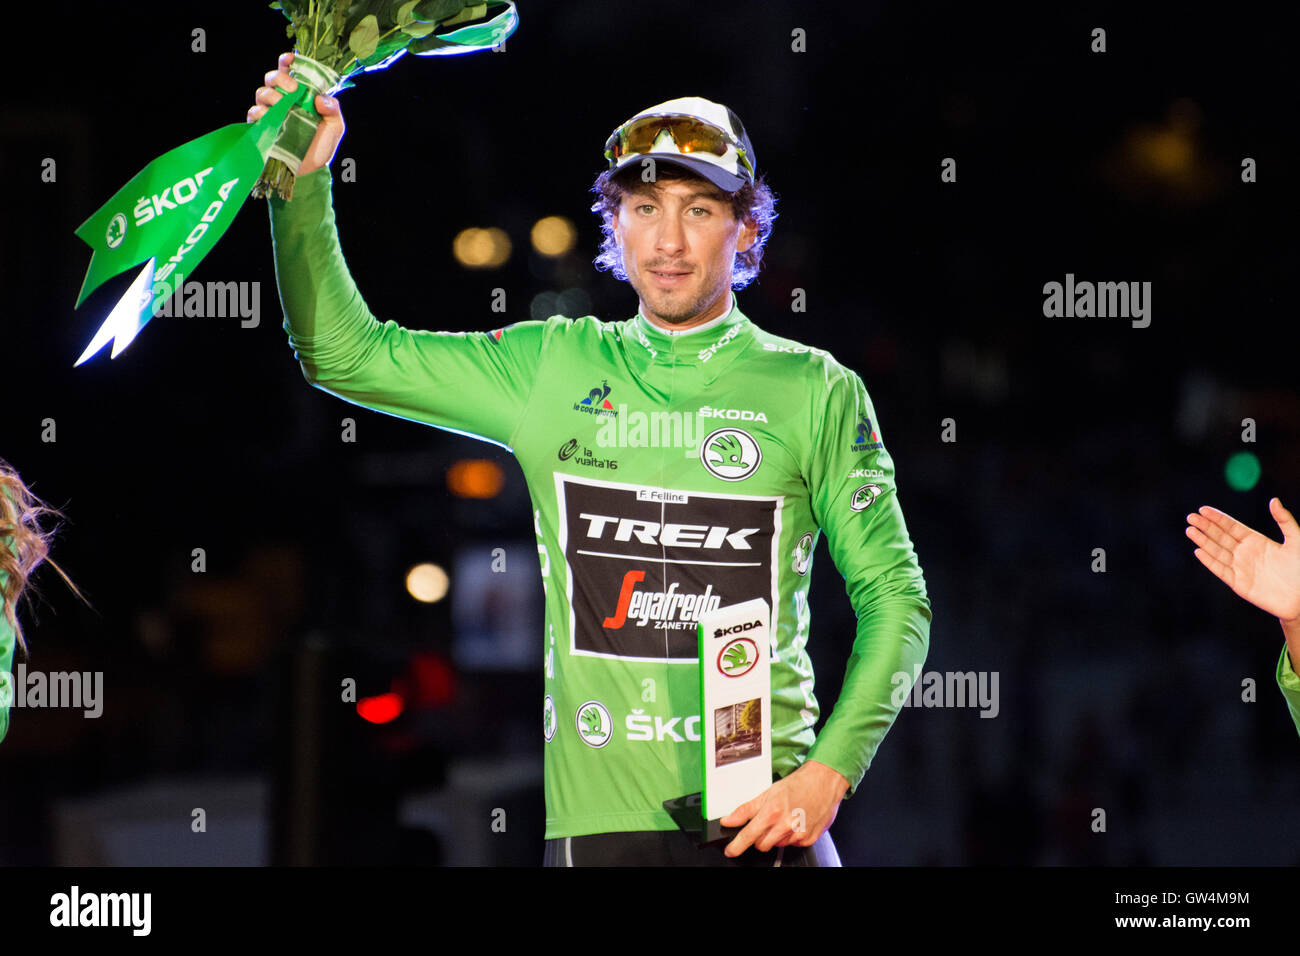 Madrid, Spain. 11th September, 2016. Fabio Fellini like winner of Points at final podium of 21st stage of cycling - Stock Image